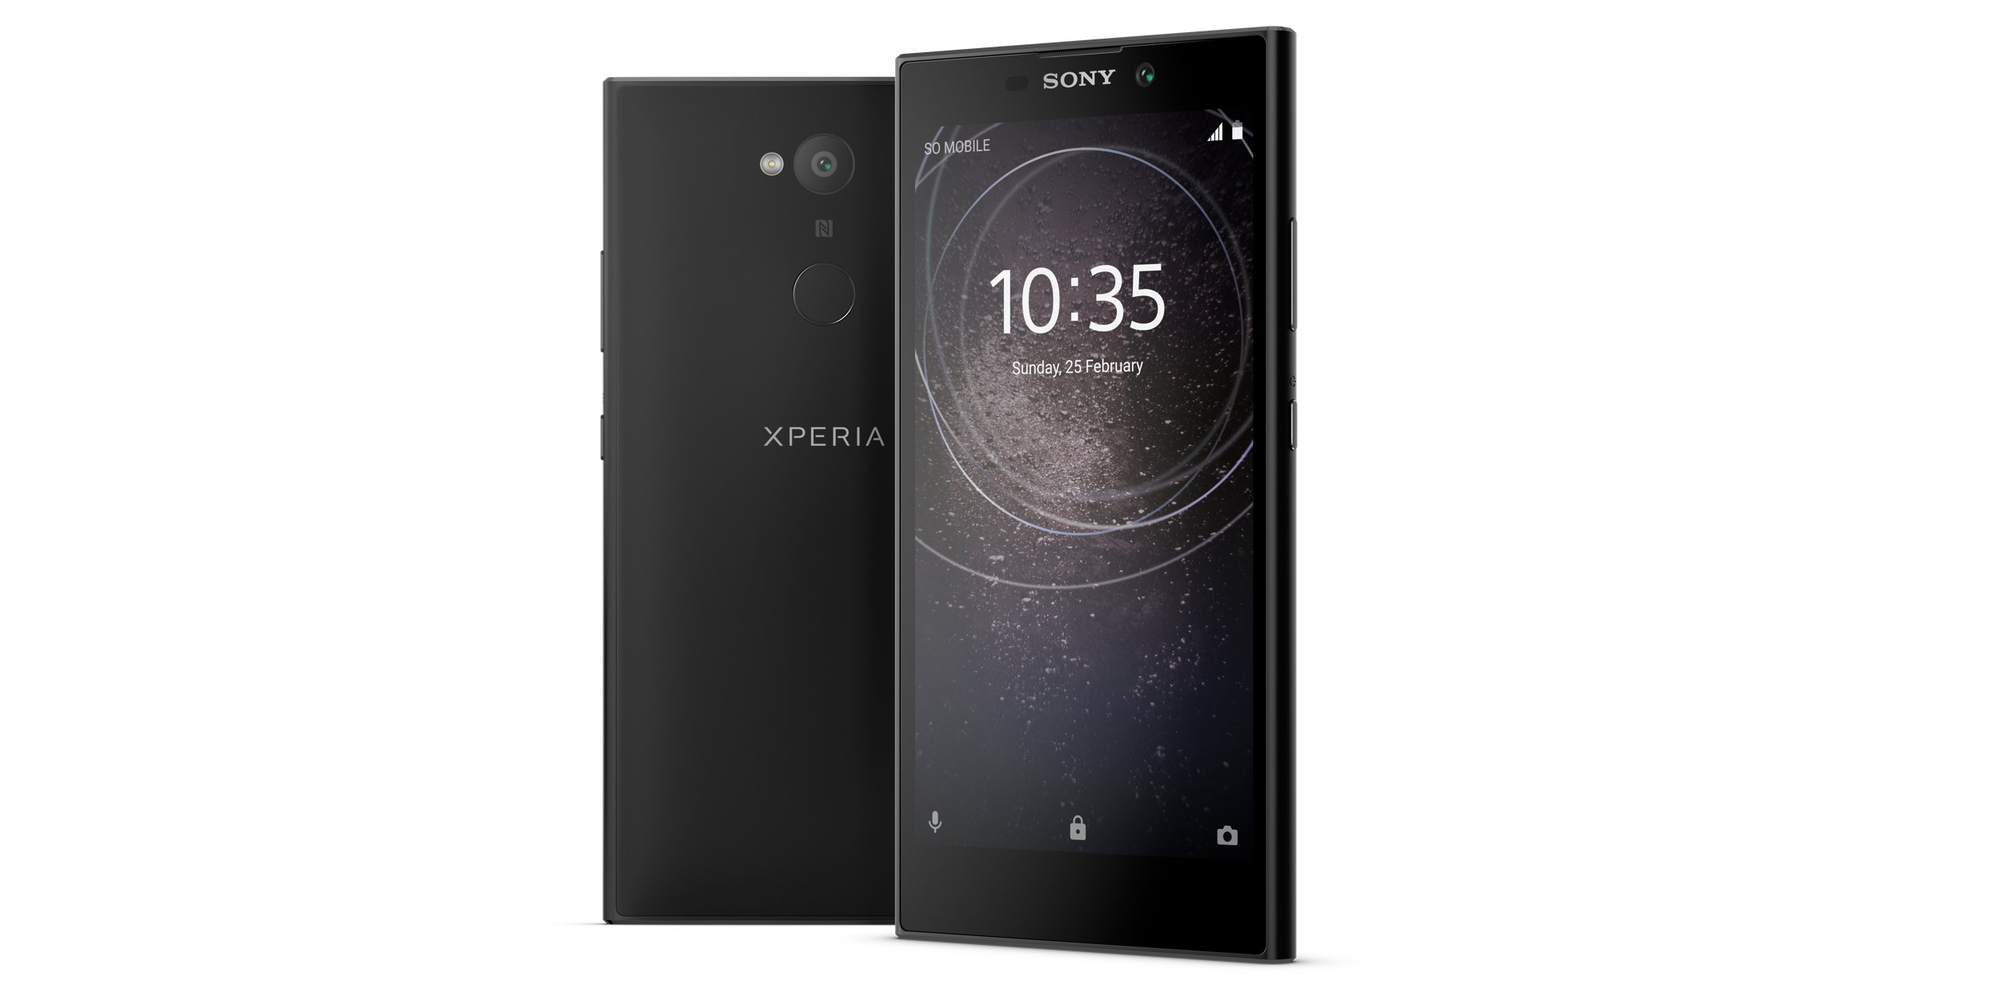 Sony's Xperia L2 Smartphone packs a 5.5-inch screen & expandable storage at $170 ($50 off)